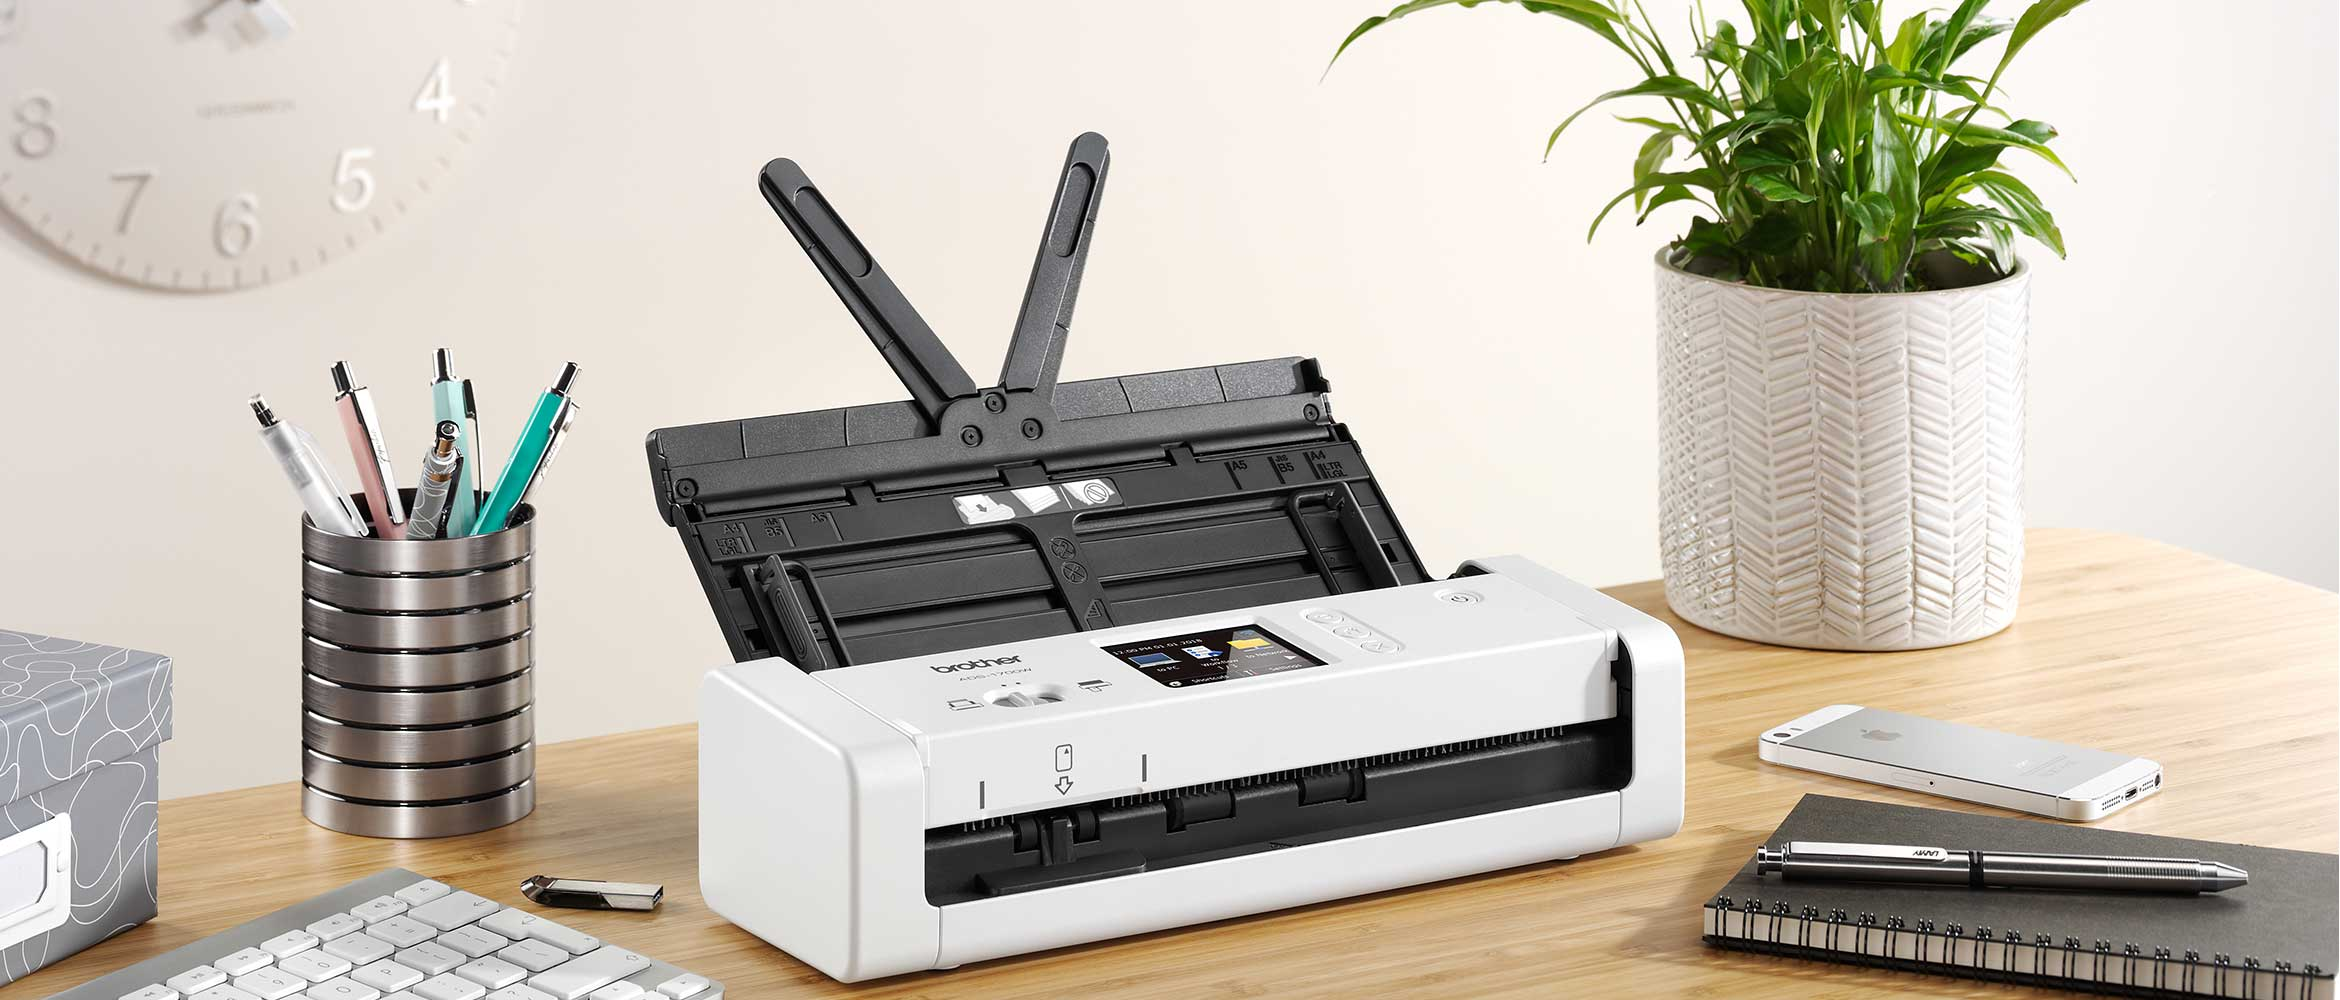 ADS-1700W-scanner-on-desk-with-stationary